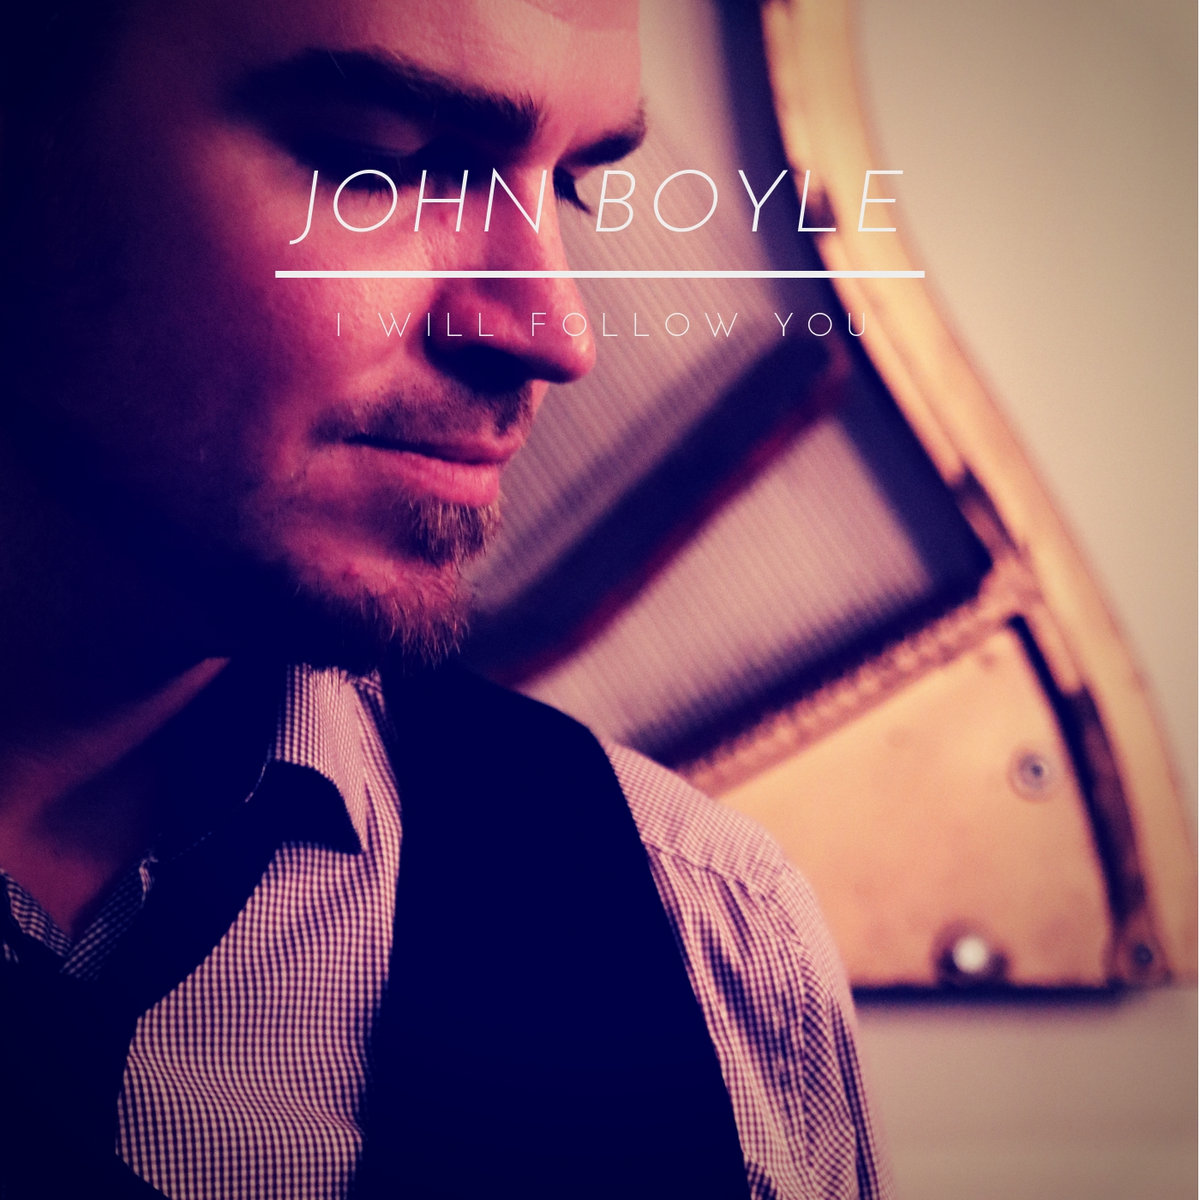 I Will Follow You (Single) by John Boyle